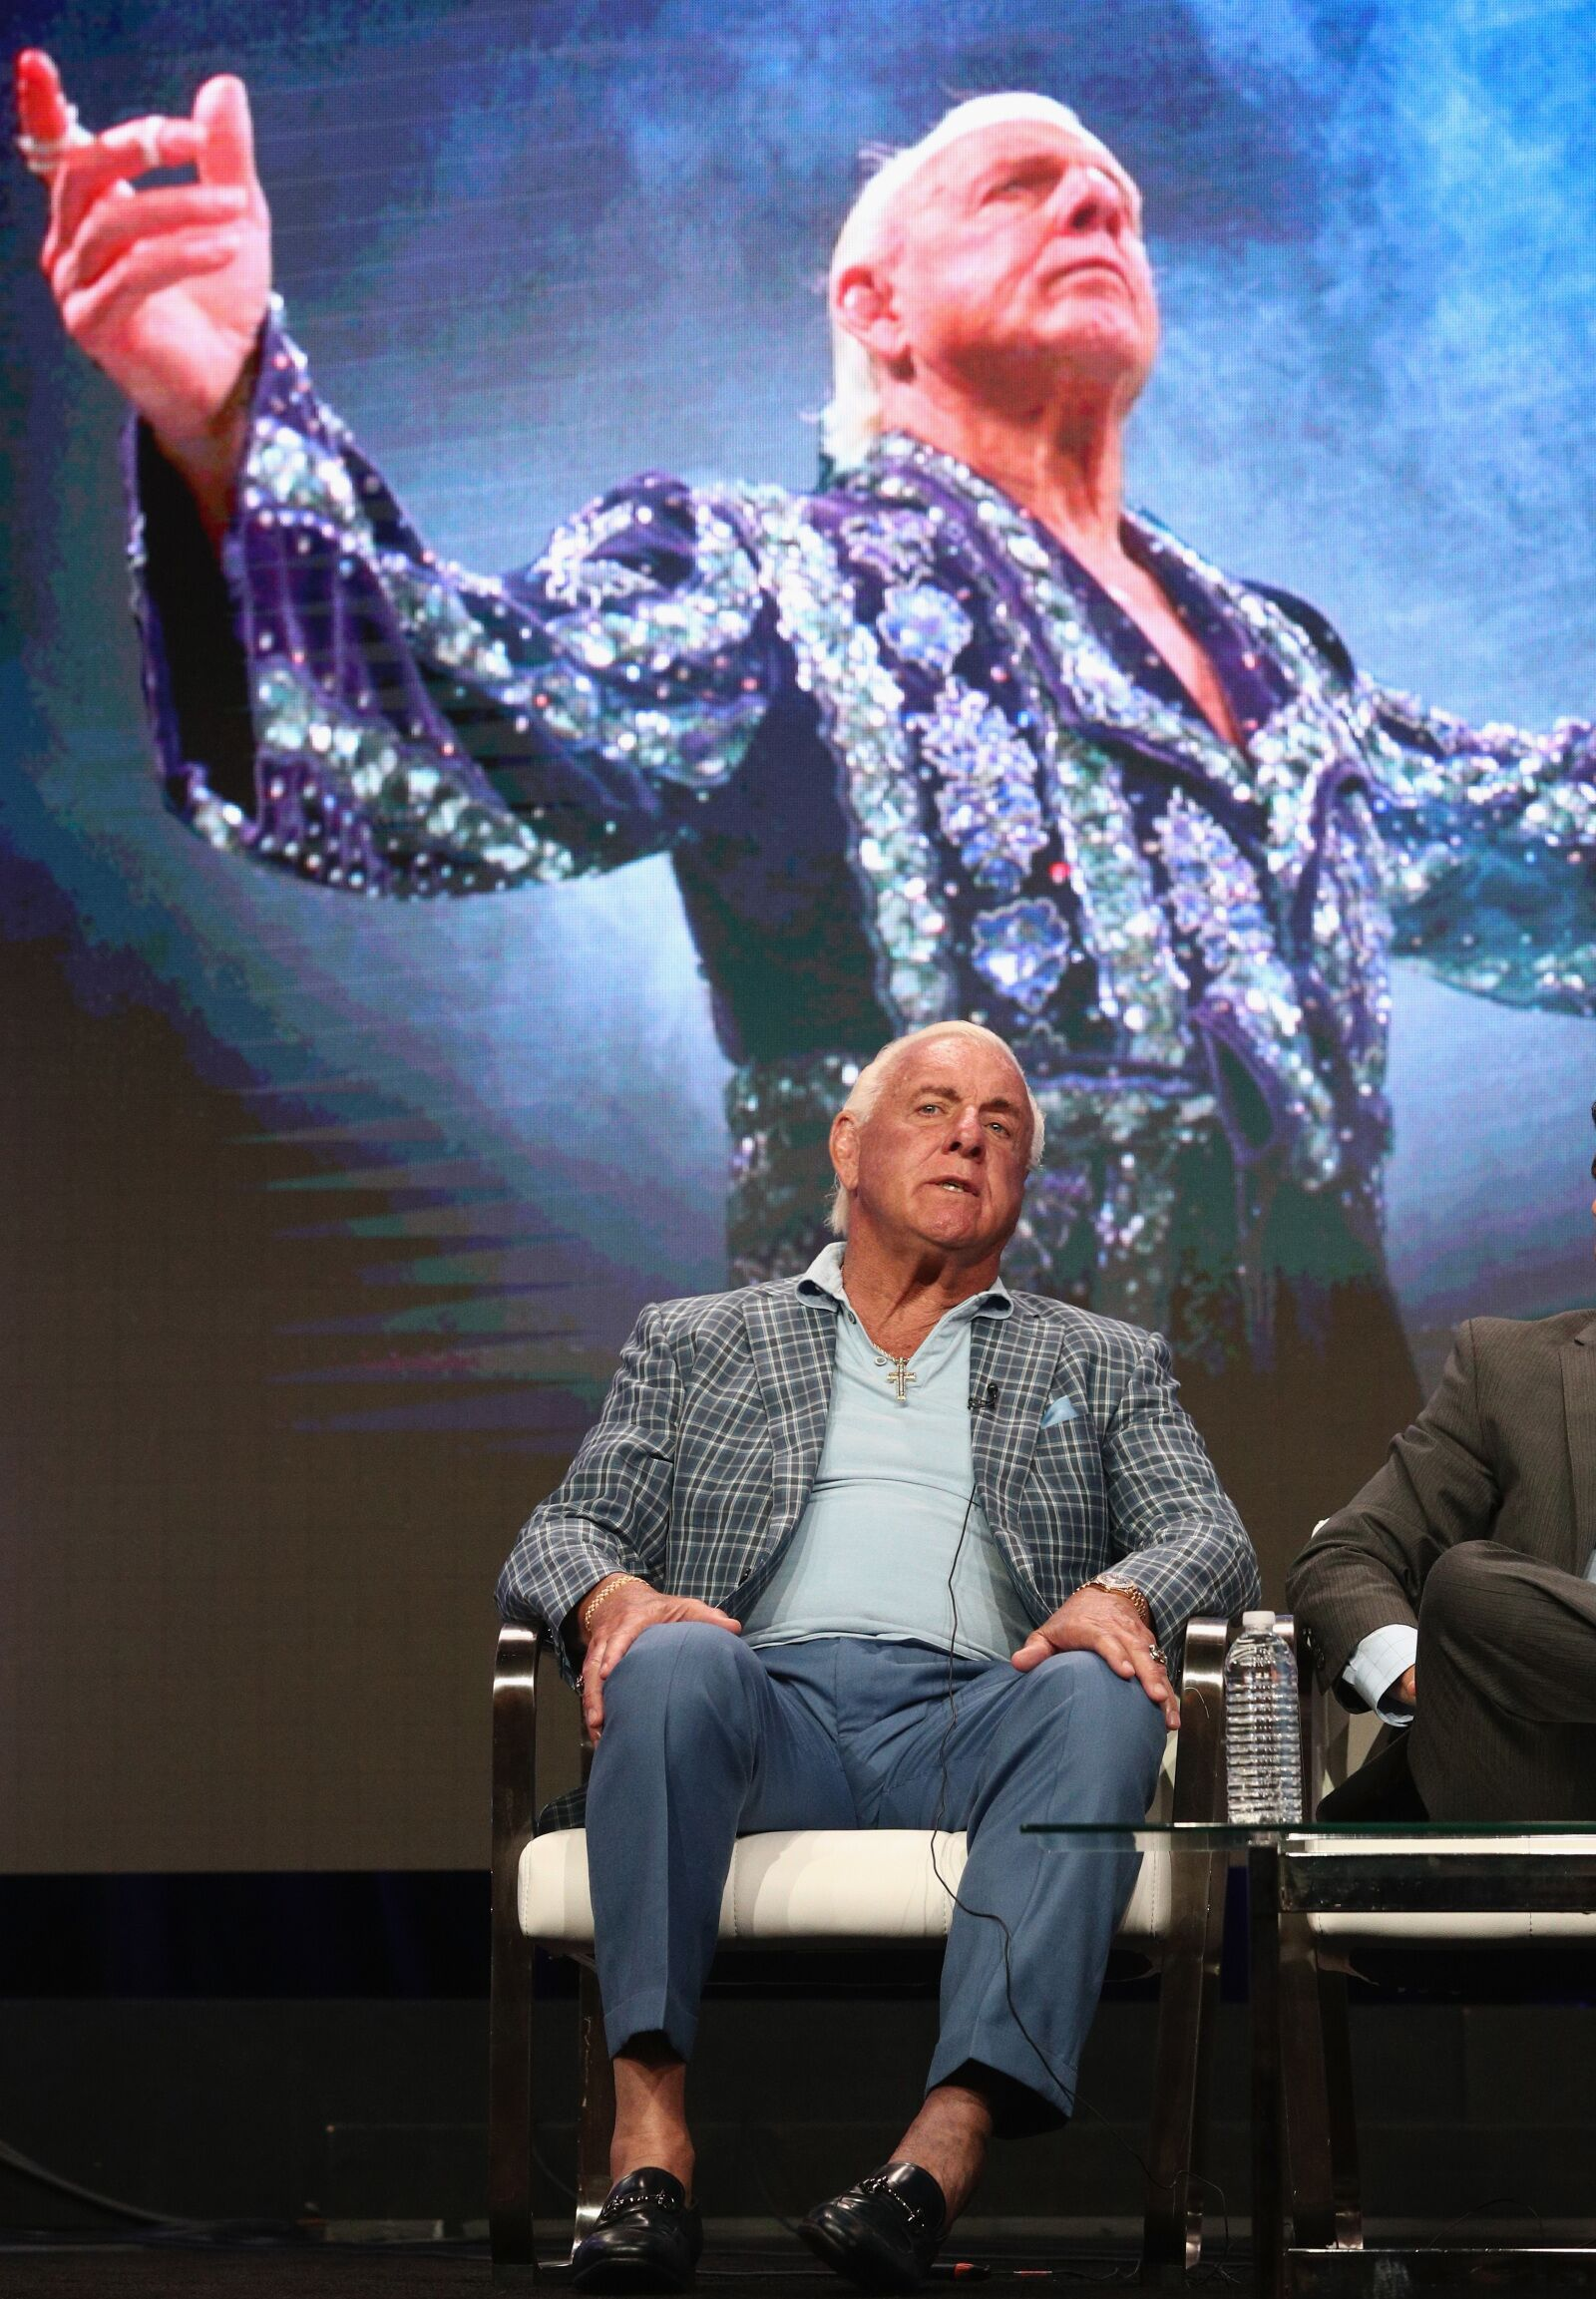 Ric Flair is crazy if he thinks he and Adidas can take down Nike